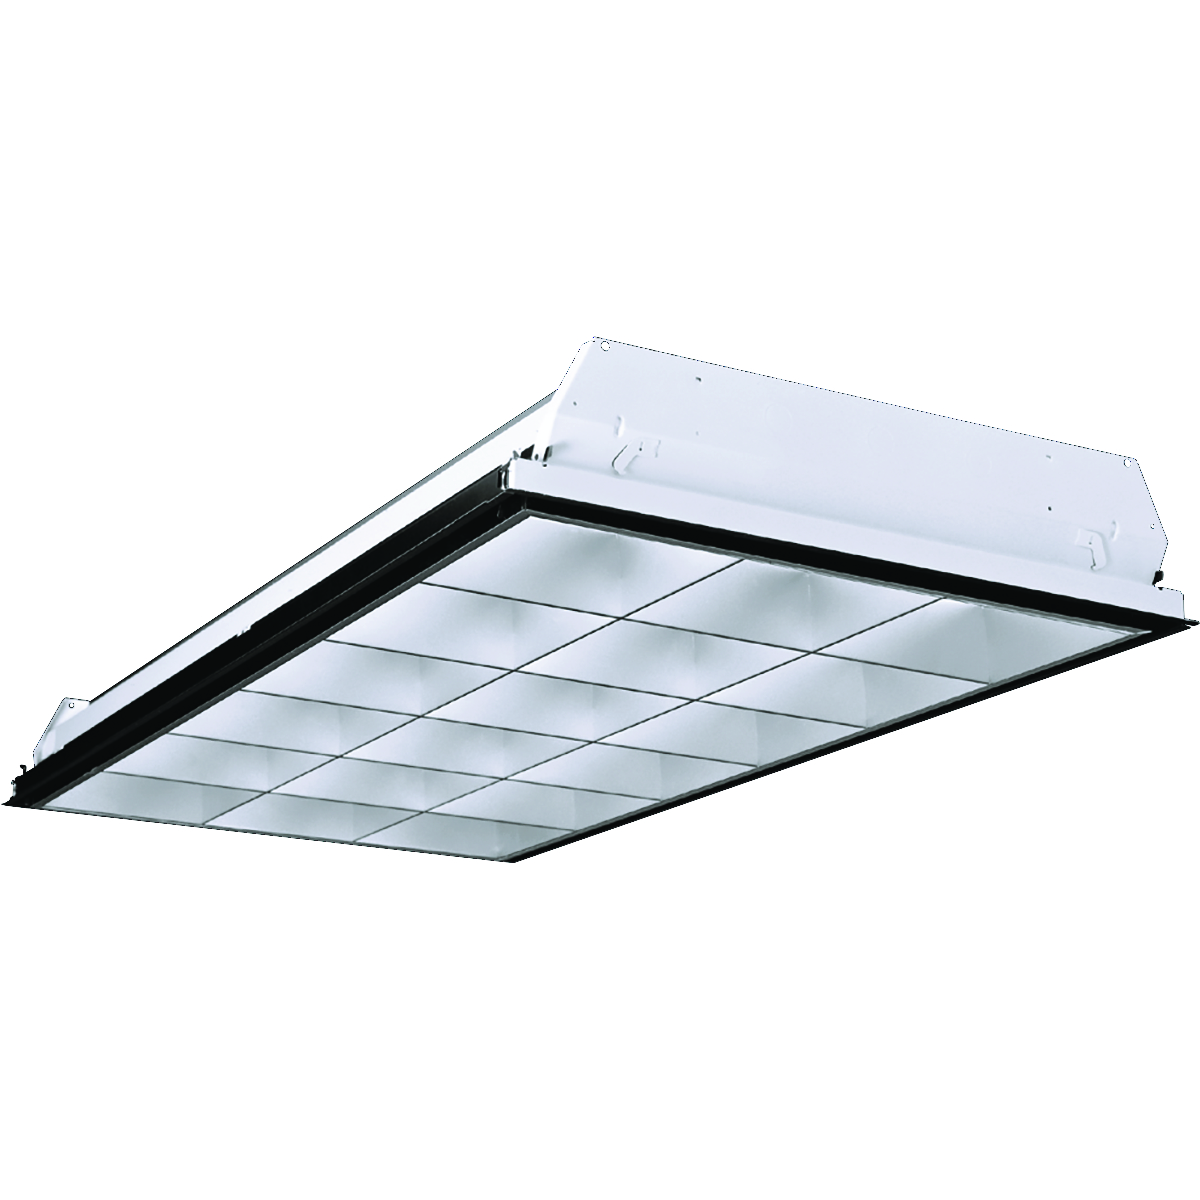 P4d recessed linear troffers commercial indoor lighting colp4d24prodimage colp4d24prodimage colp4d22prodimage colp4dappimage04 colp4dappimage02 arubaitofo Choice Image